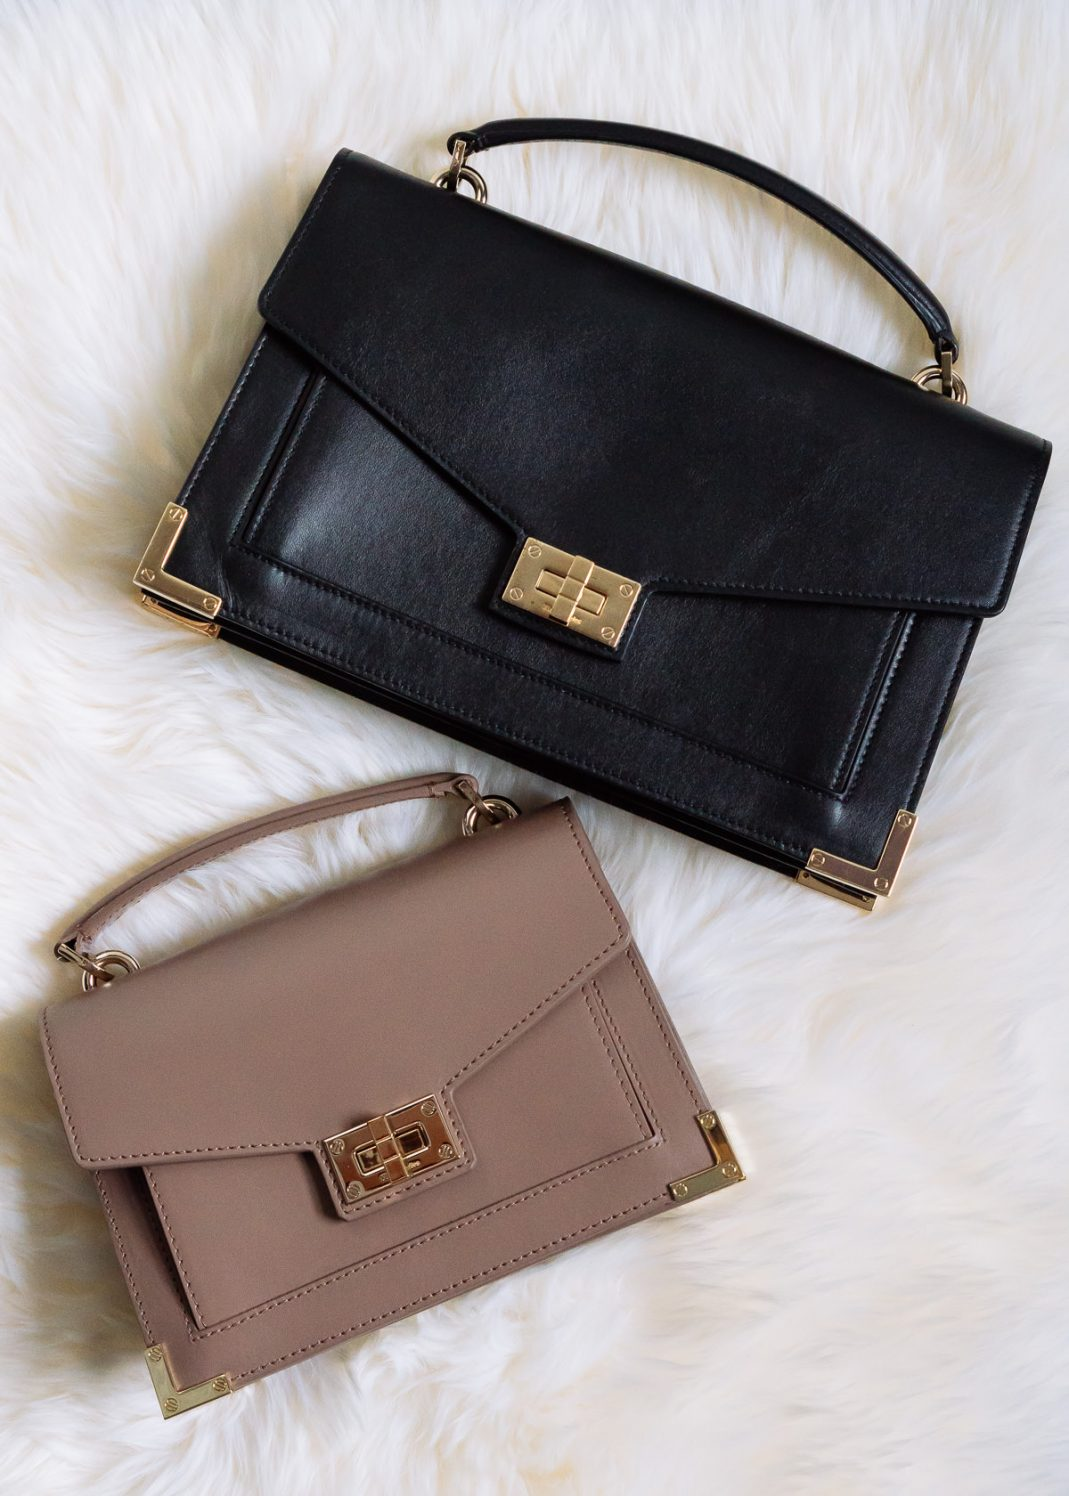 cffe2b93e5c7 Introducing  The Emily Bag By The Kooples - PurseBlog